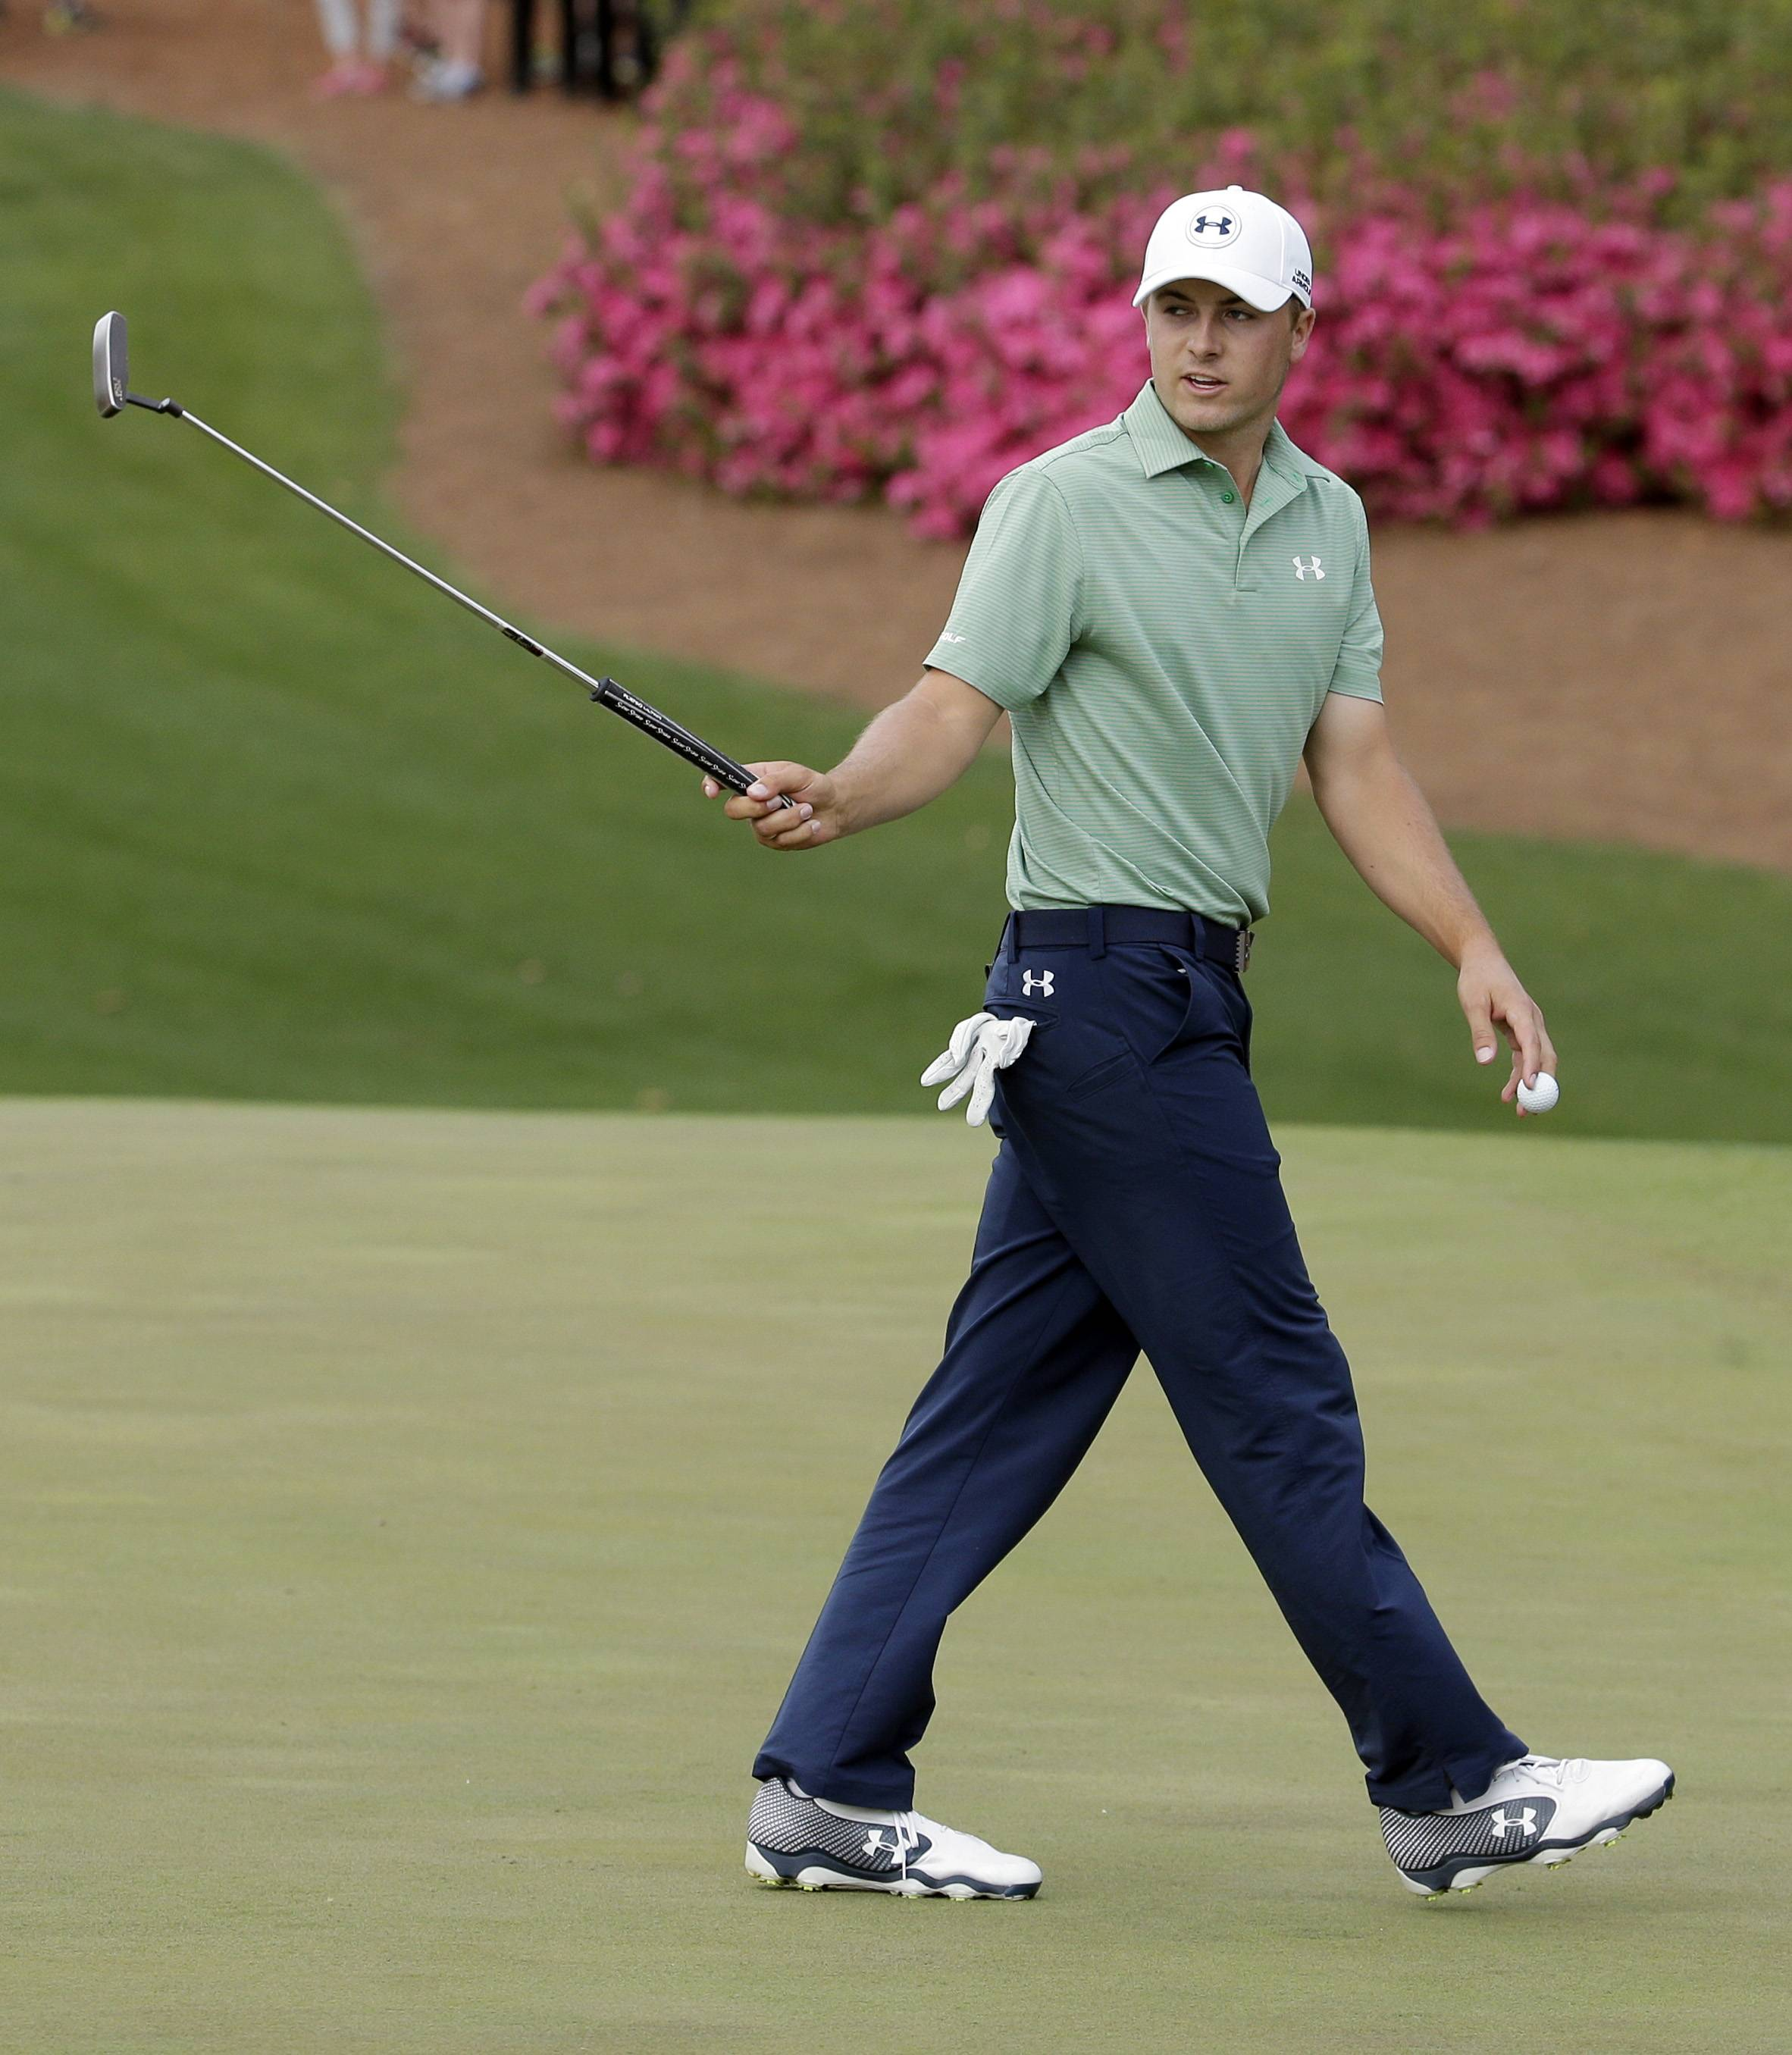 Jordan Spieth made a run Sunday at the Masters, displaying guts on the course that is unfathomable for someone his age.